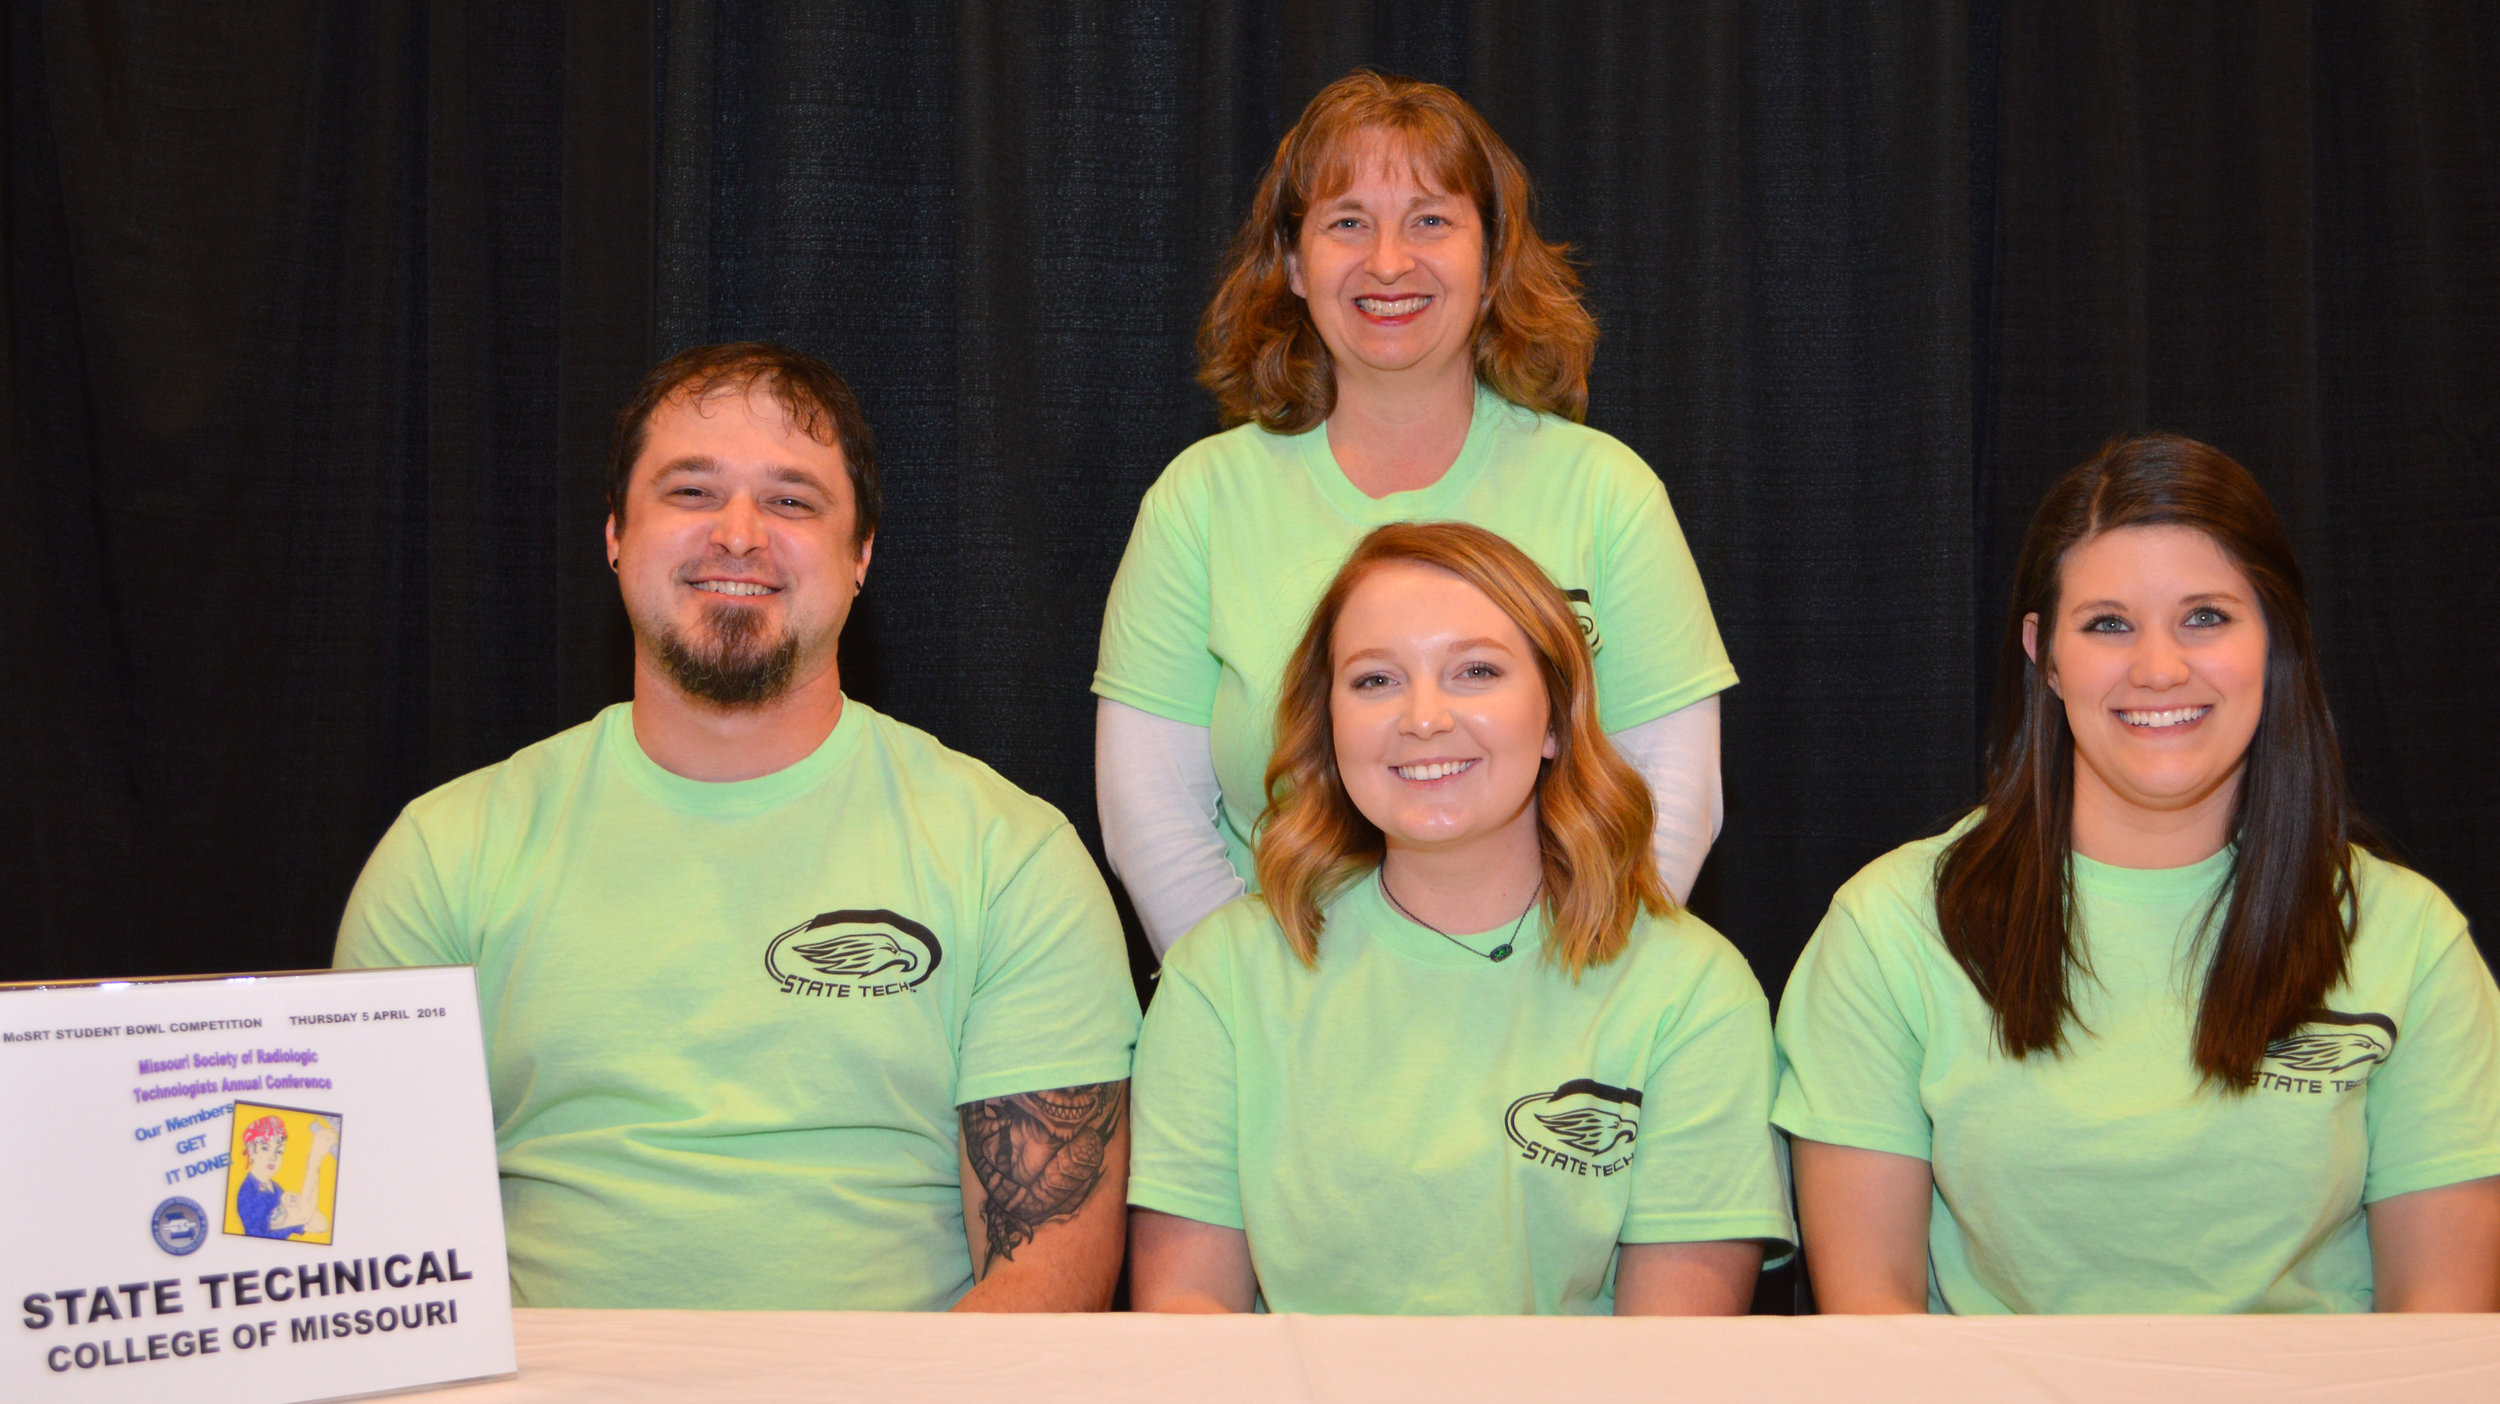 STATE_TECHNICAL_Student_Bowl_2nd Place_DSC_0346.JPG